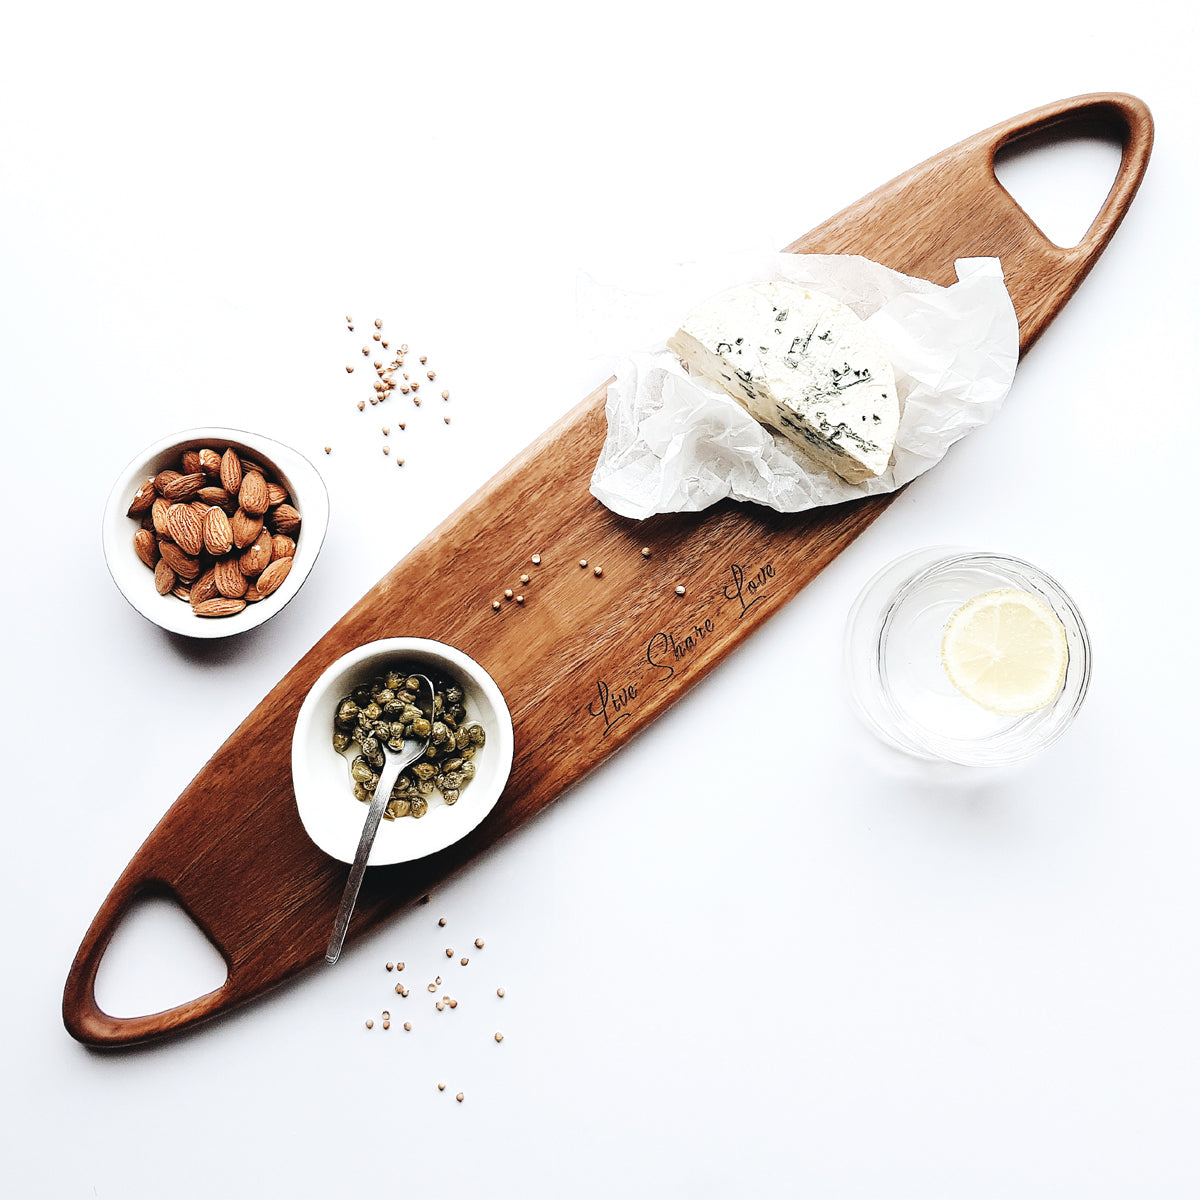 Personalised Stylus cheese board designed and handcrafted in Australia by Manual Arts DEpt.